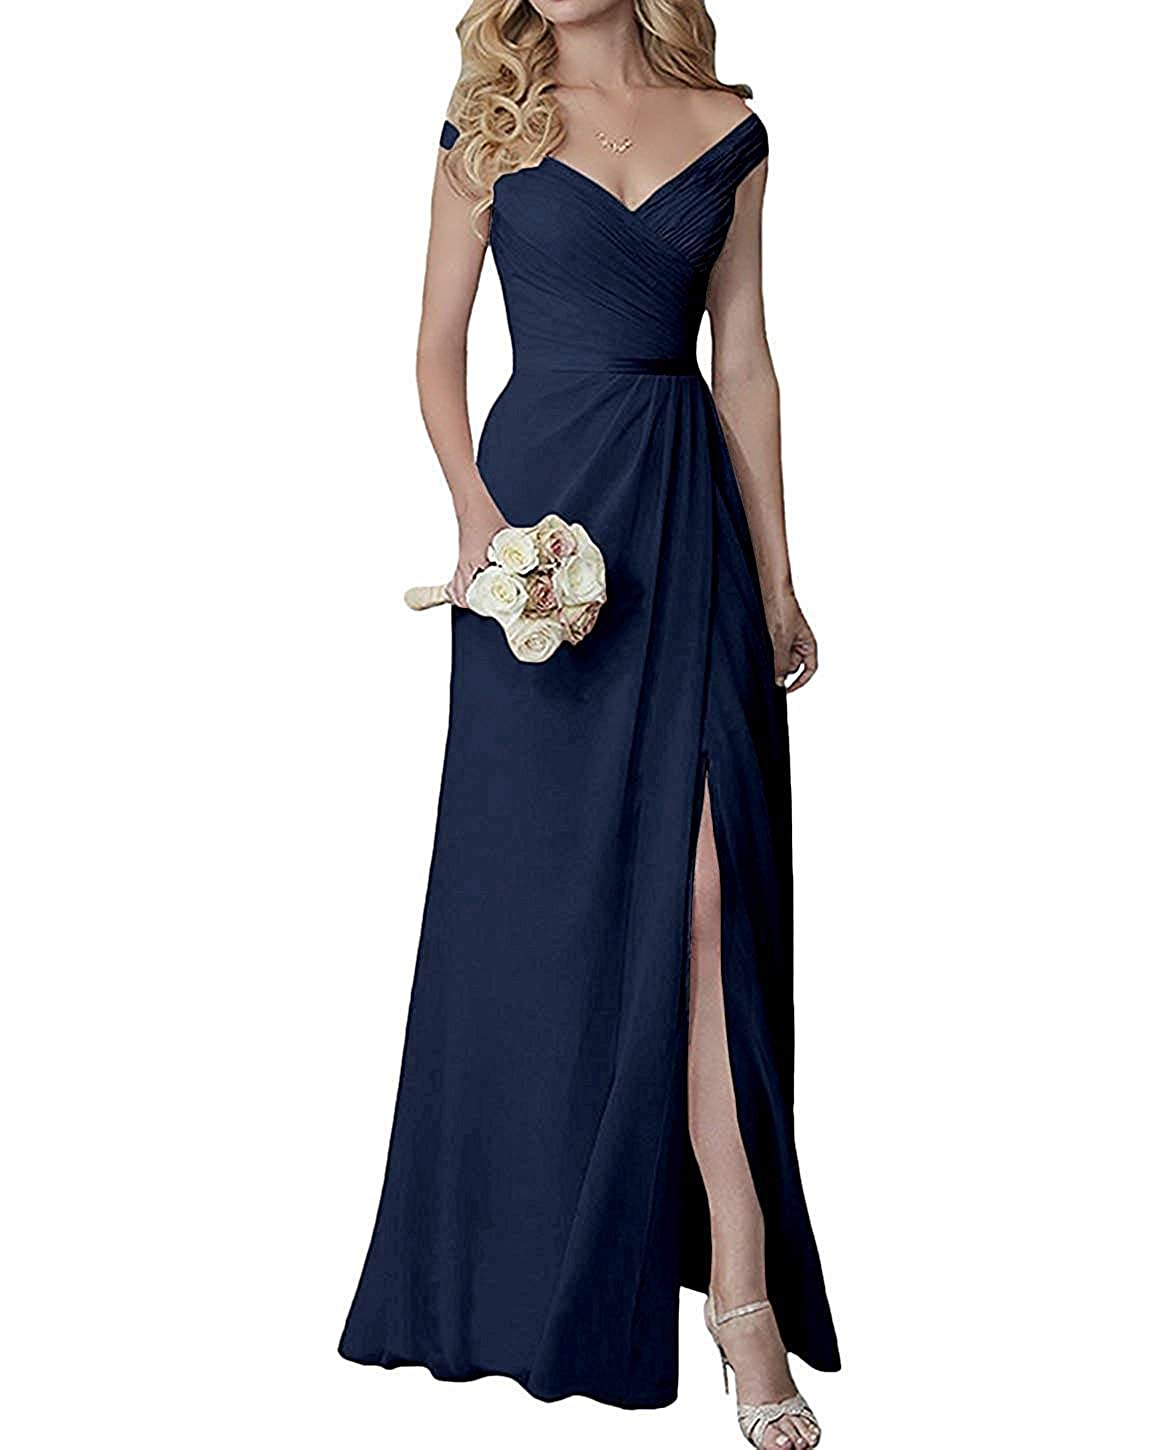 Navy bluee EllieHouse V Neck Slit Long Bridesmaid Dress Formal Evening Gown